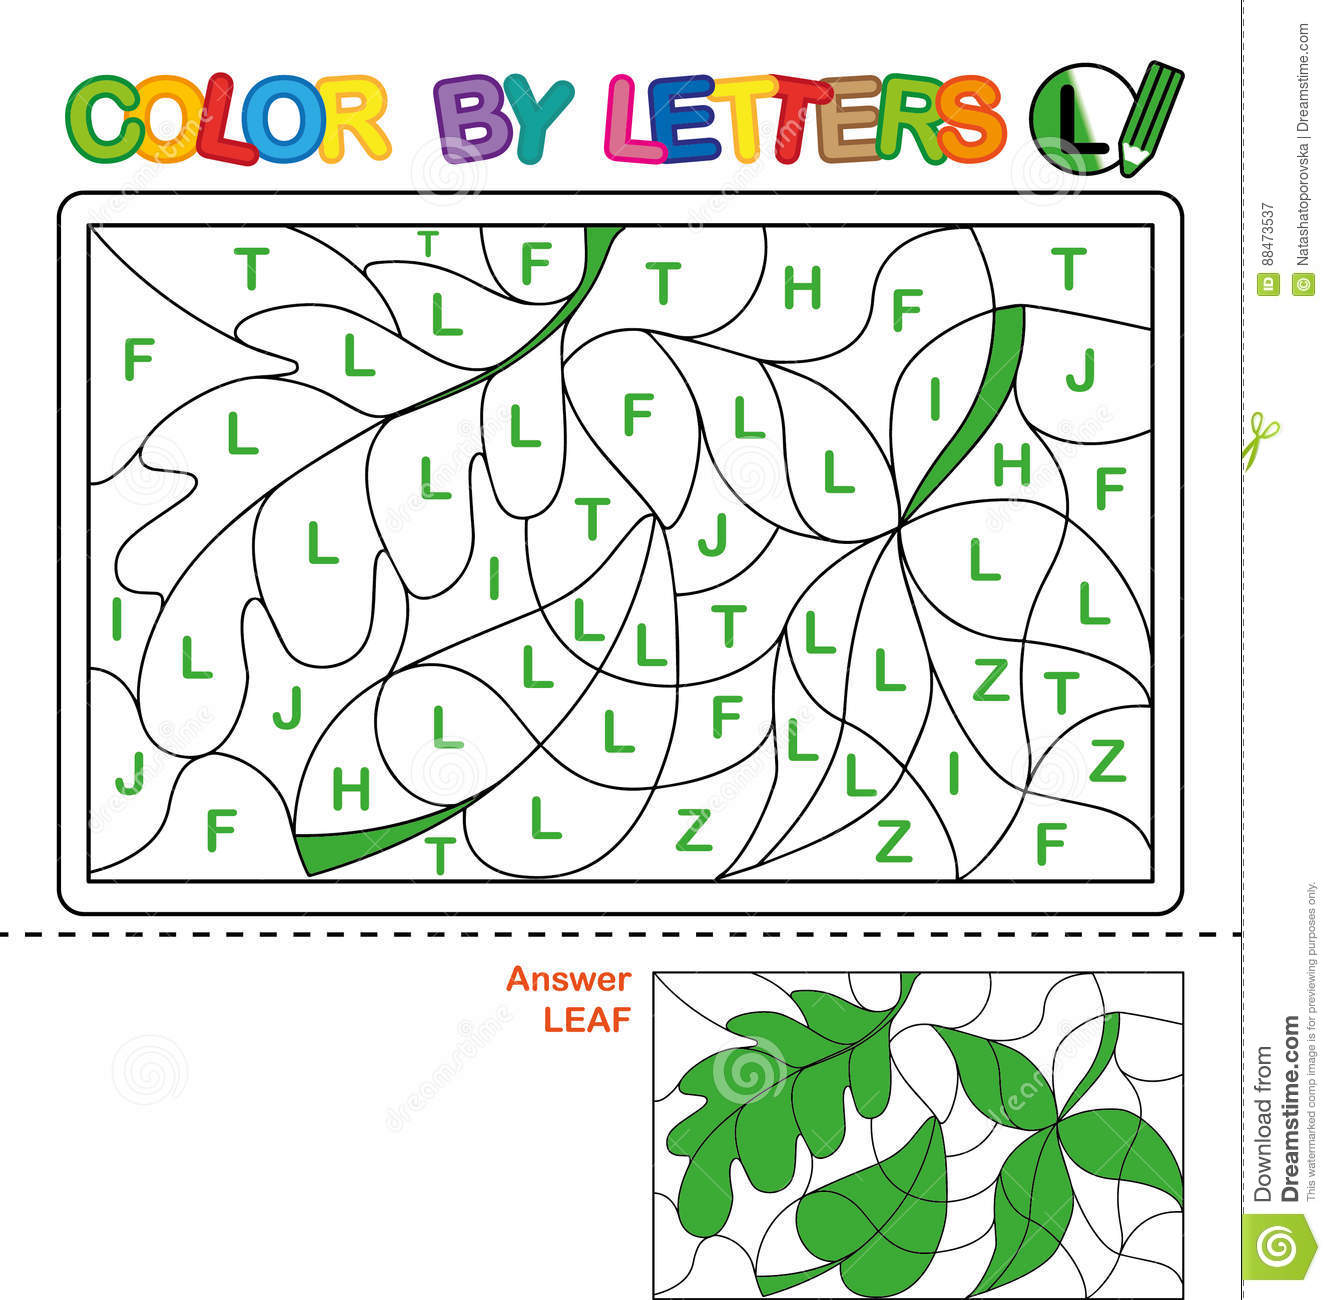 Color By Letter Puzzle For Children Leaf Cartoon Vector